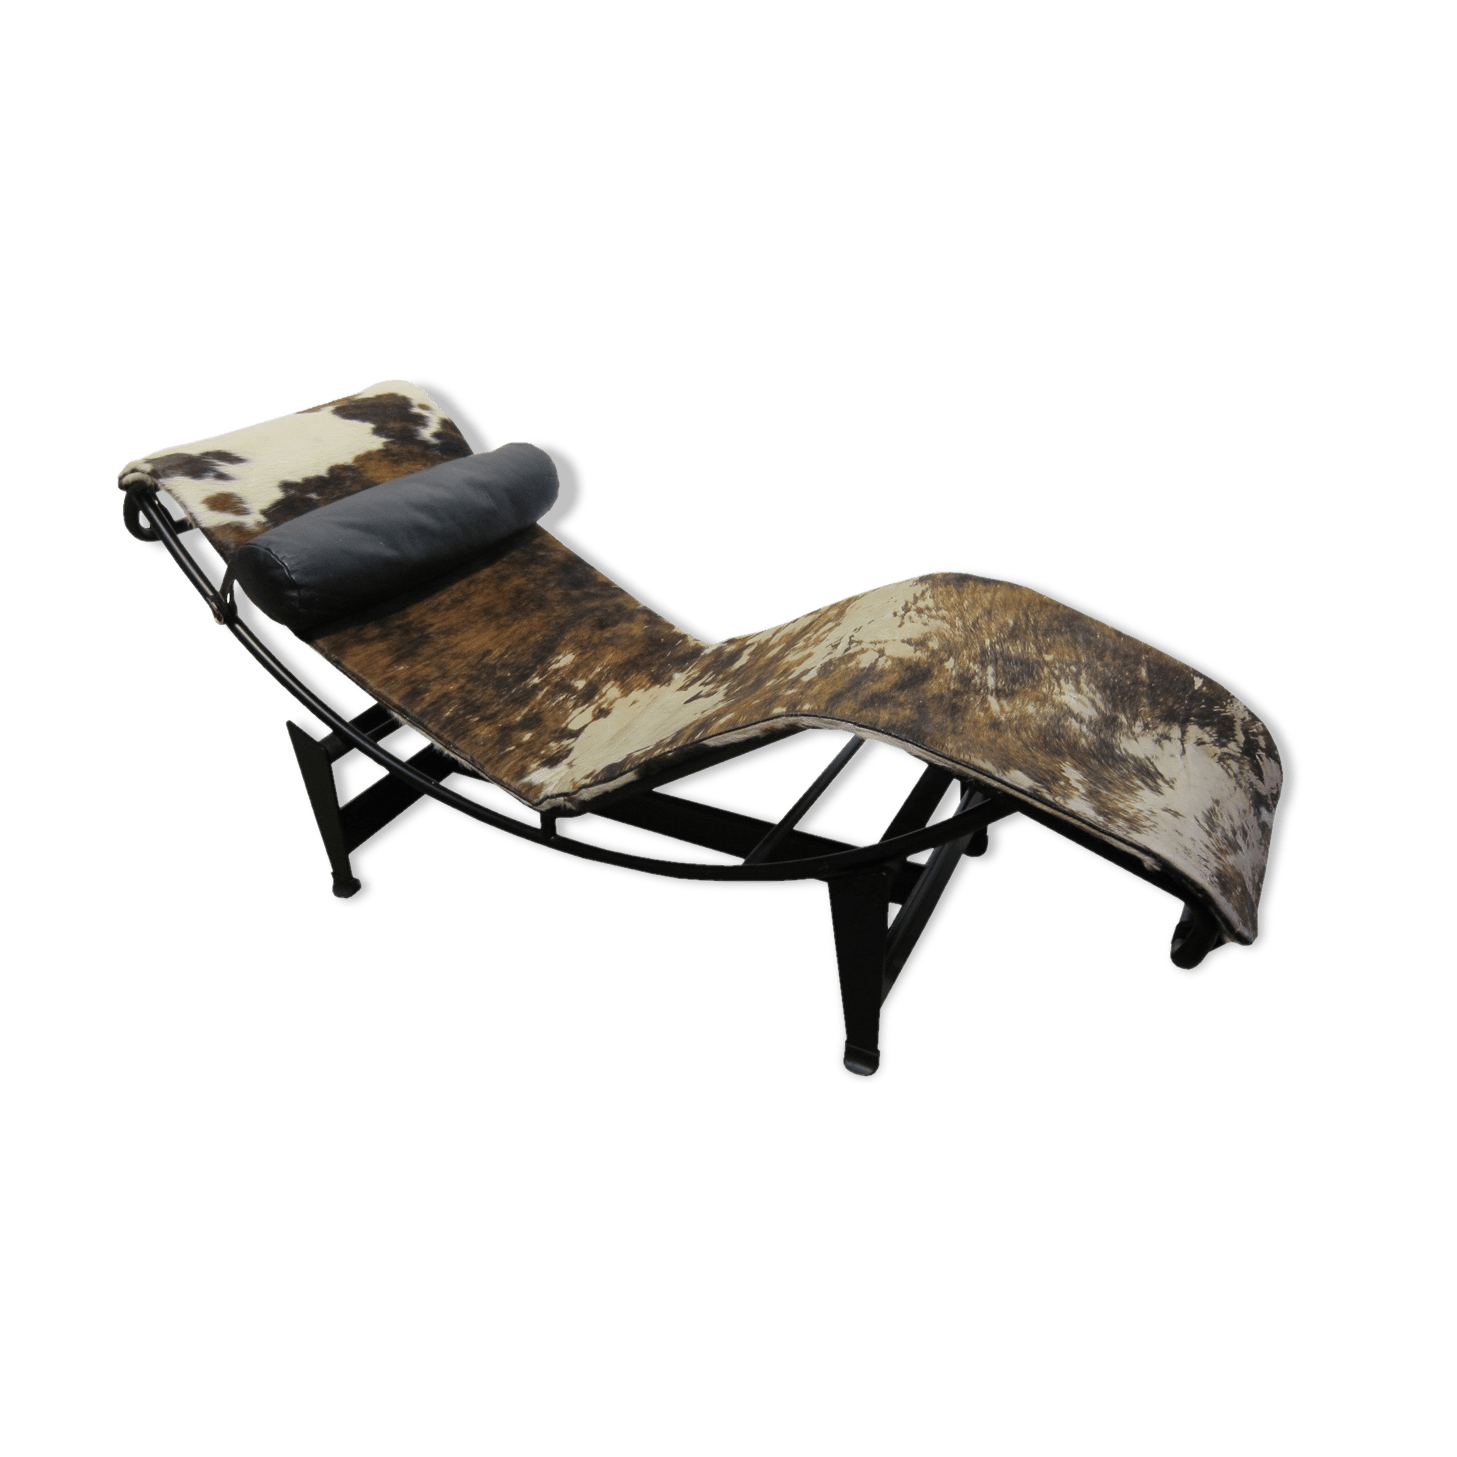 Chaise Le Corbusier Prix Chaise Le Corbusier Prix Elegant Lc Chaise Longue By Le